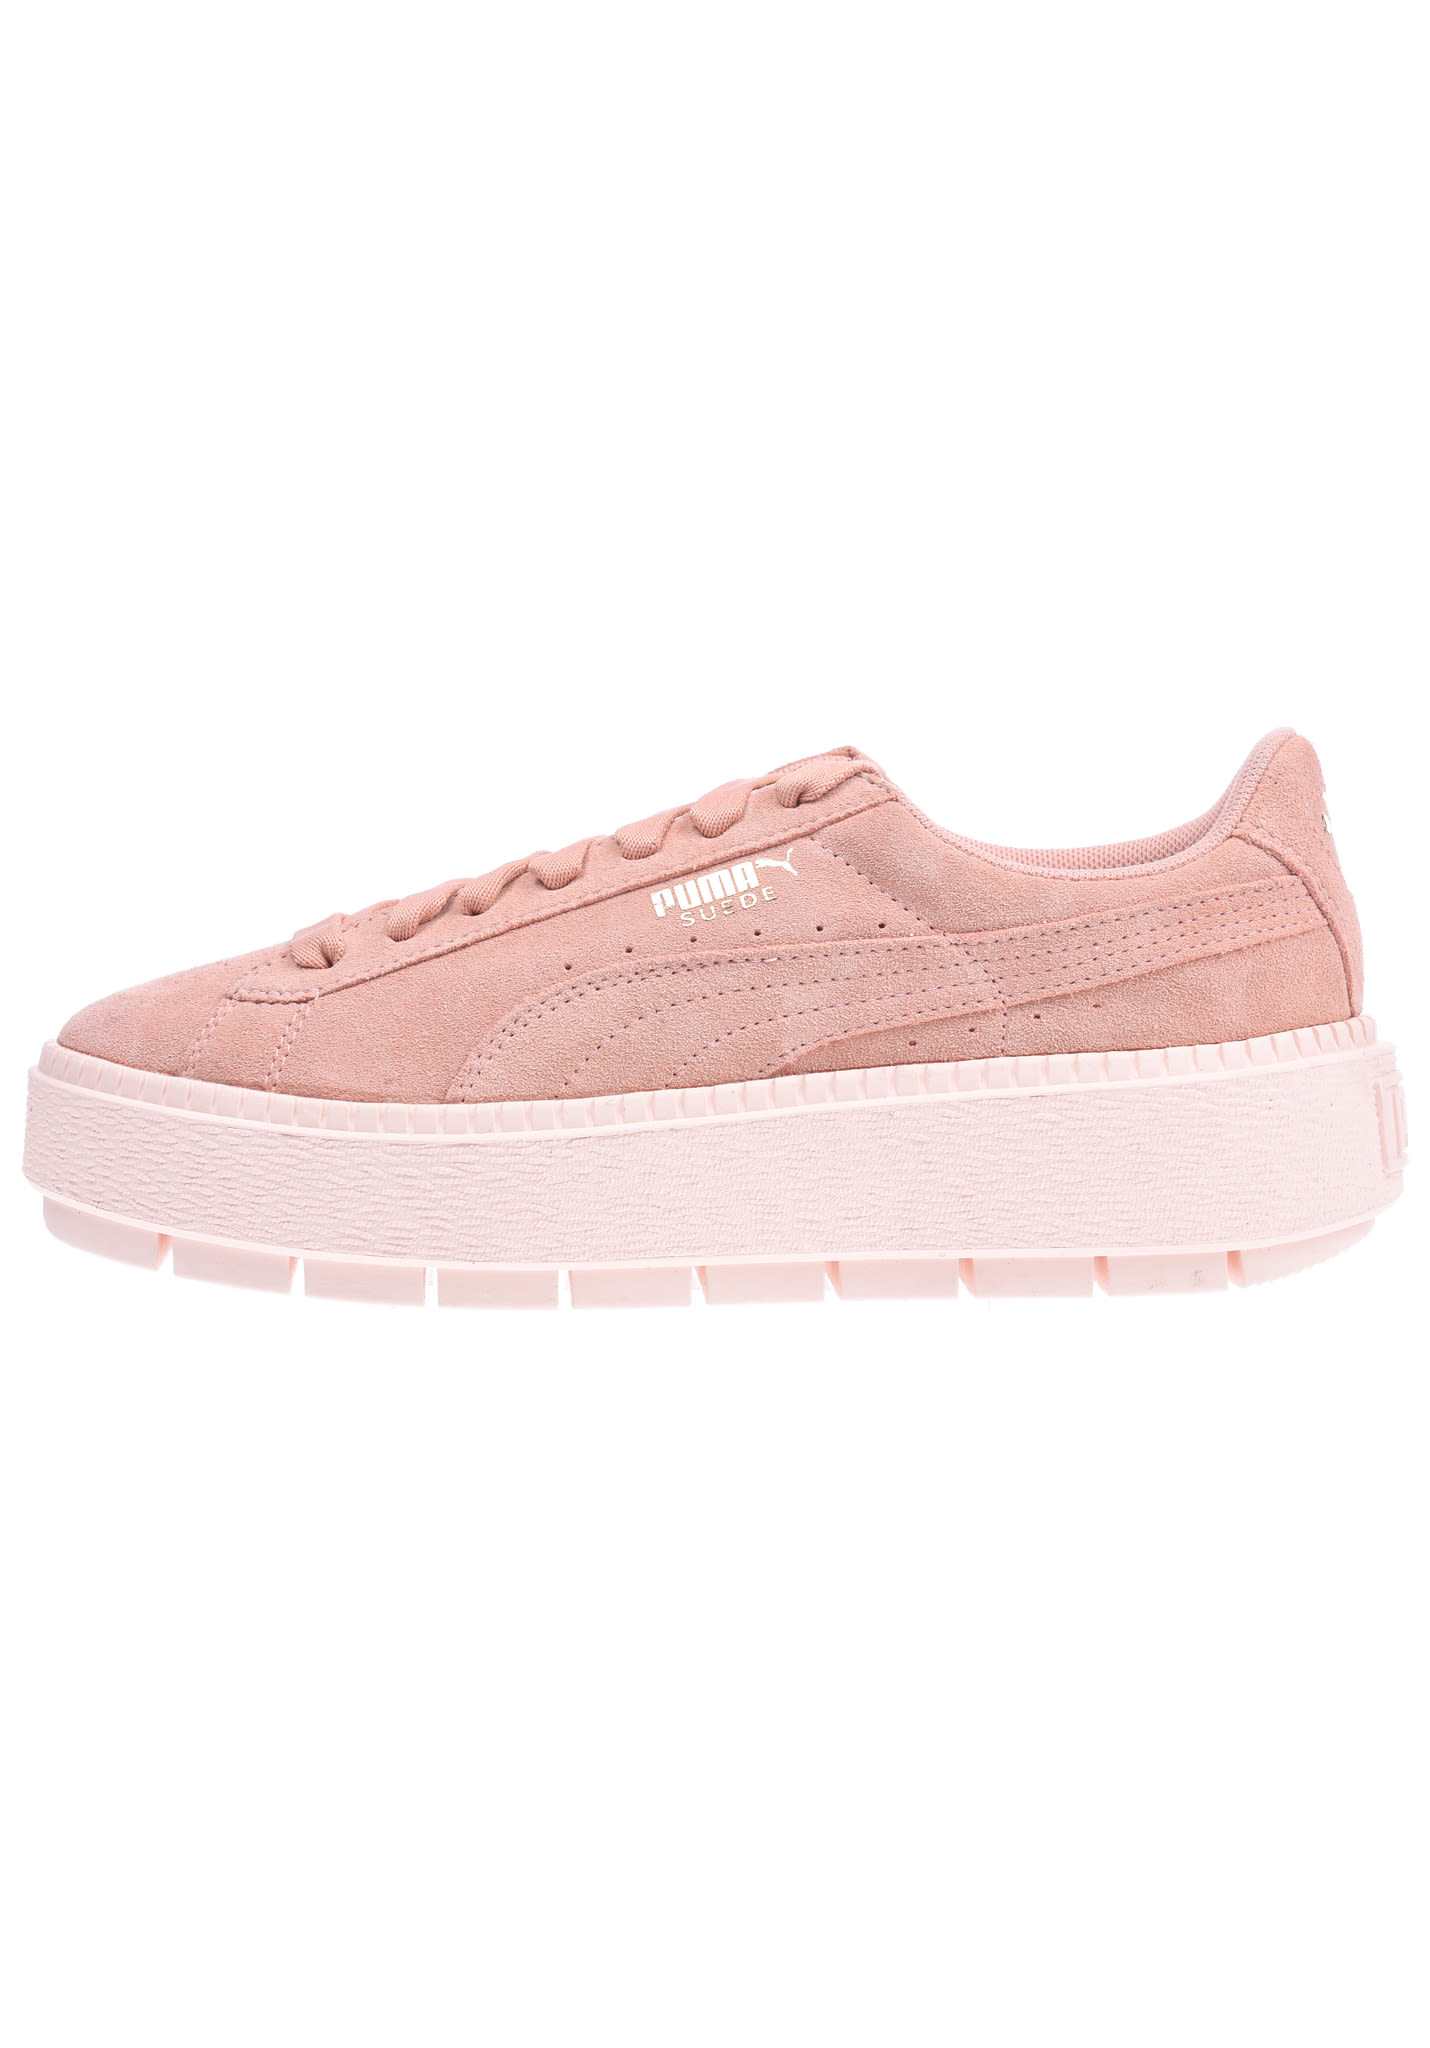 big sale ce6ab 678c5 Puma Platform Trace - Sneakers for Women - Pink